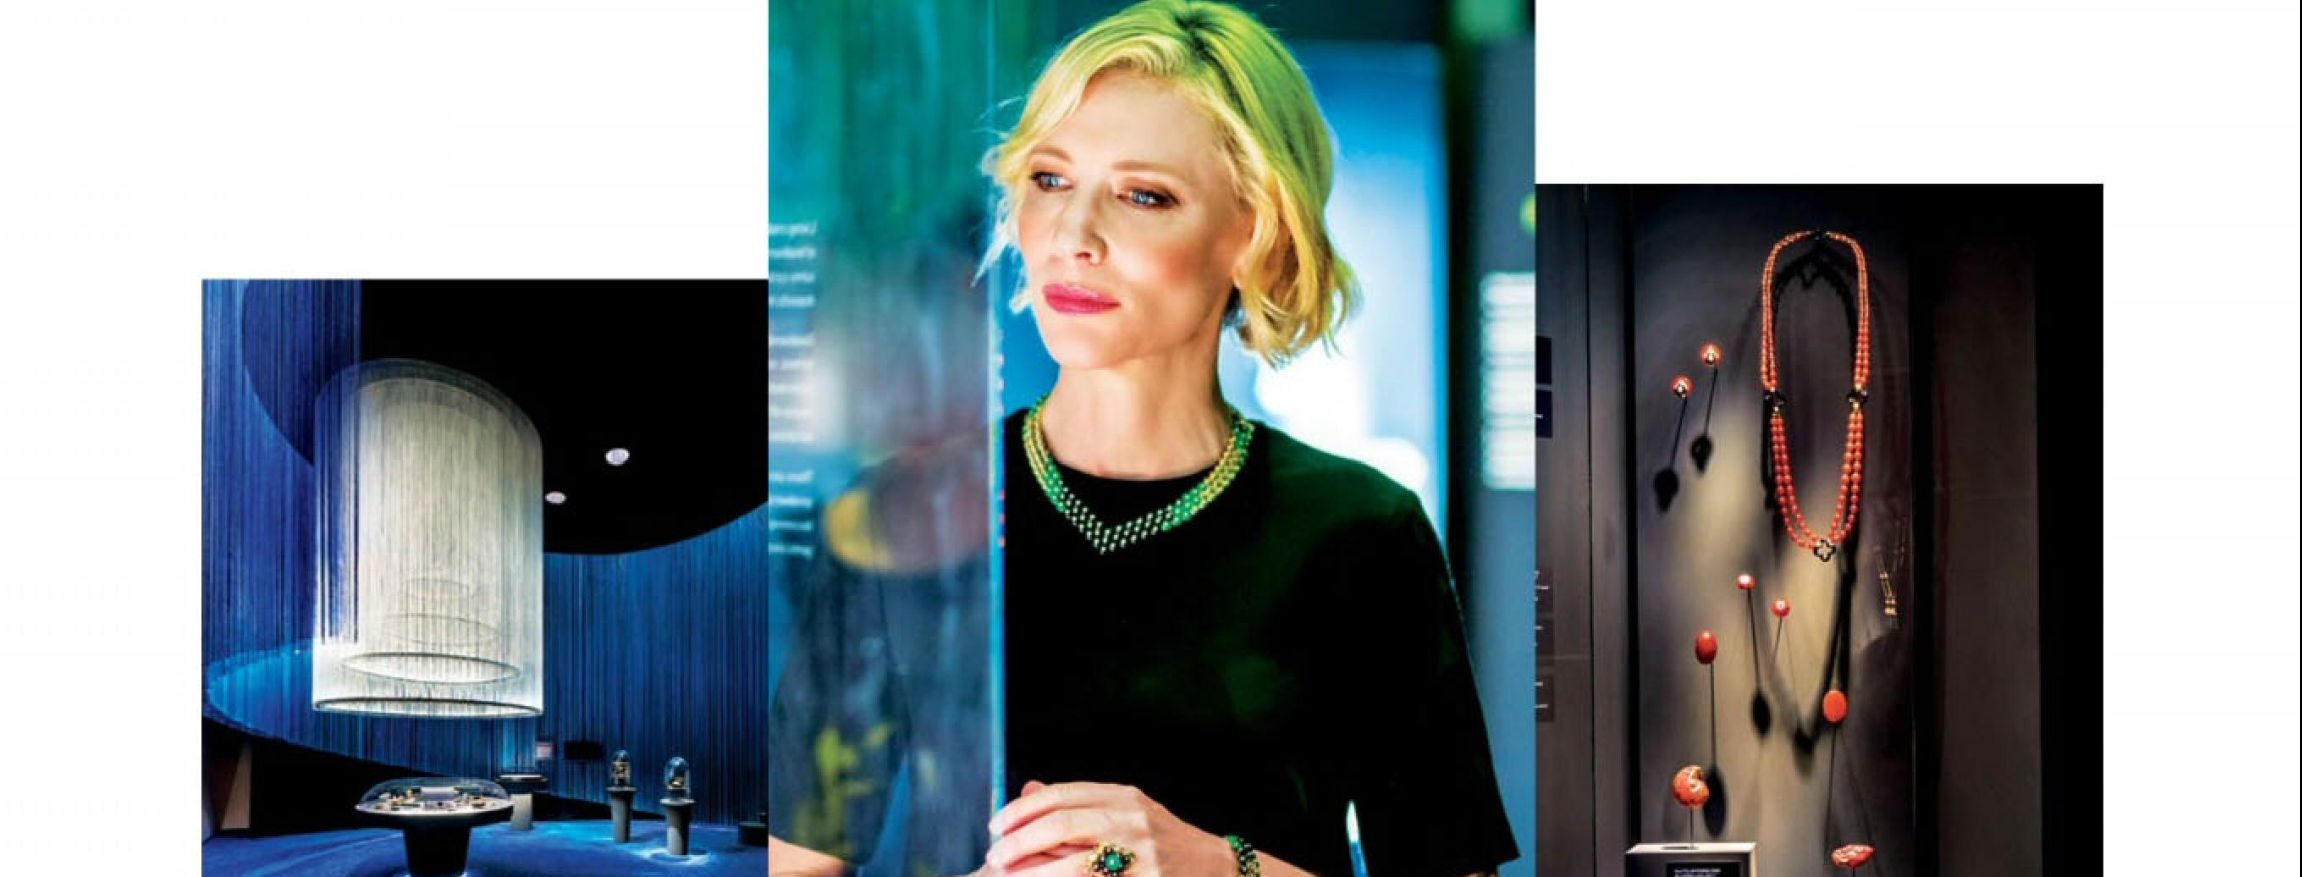 New interview with Cate Blanchett for Harper's Bazaar Singapore